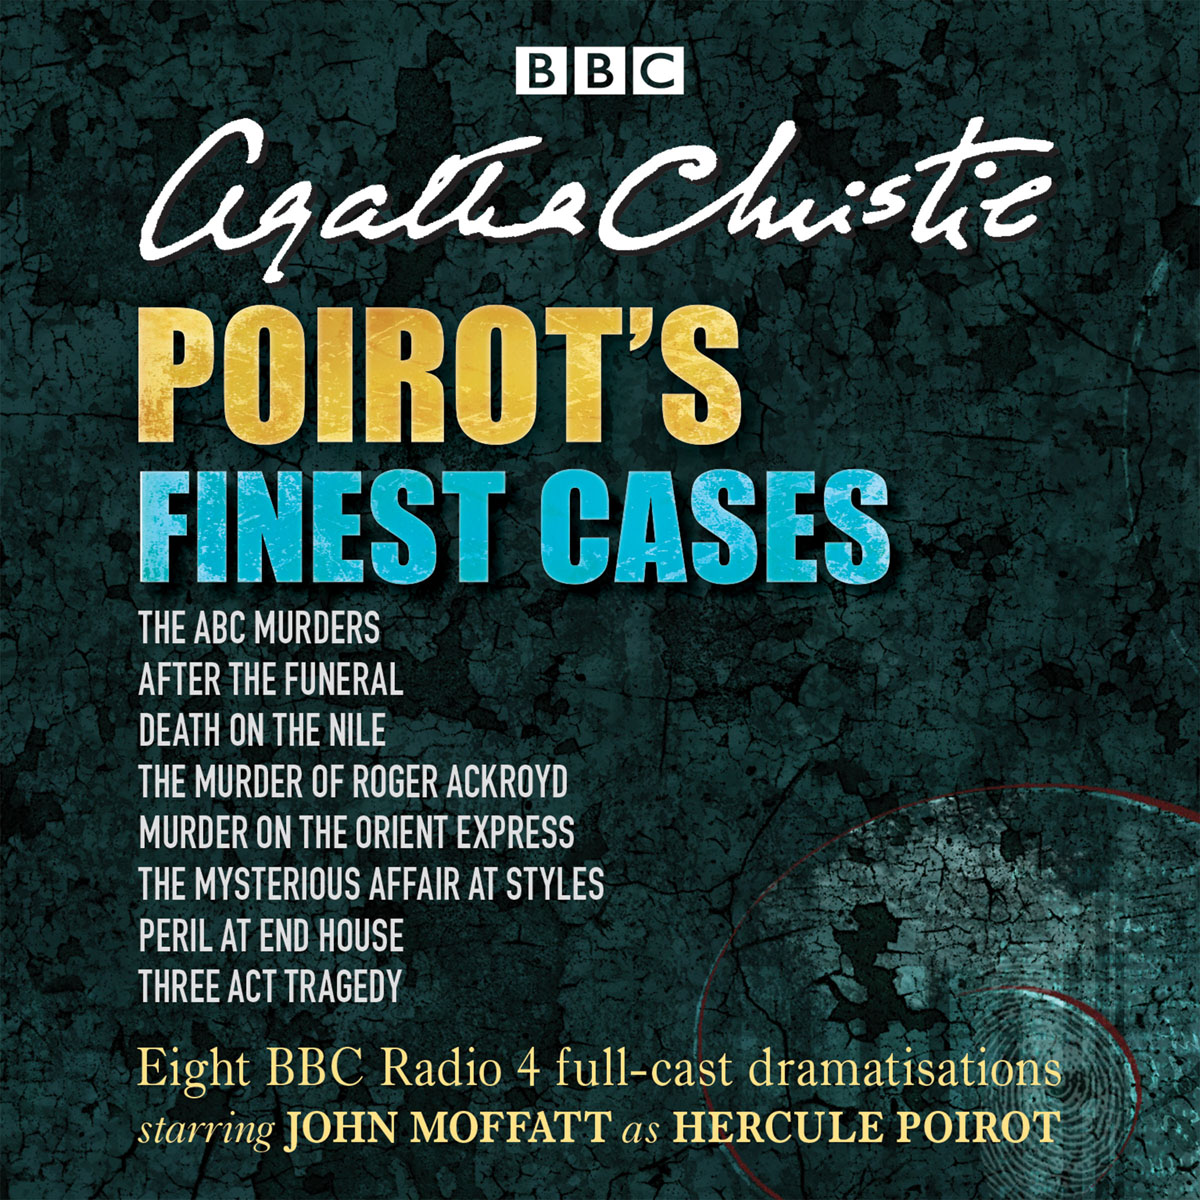 Poirot's Finest Cases бронхотуссит гф в москве